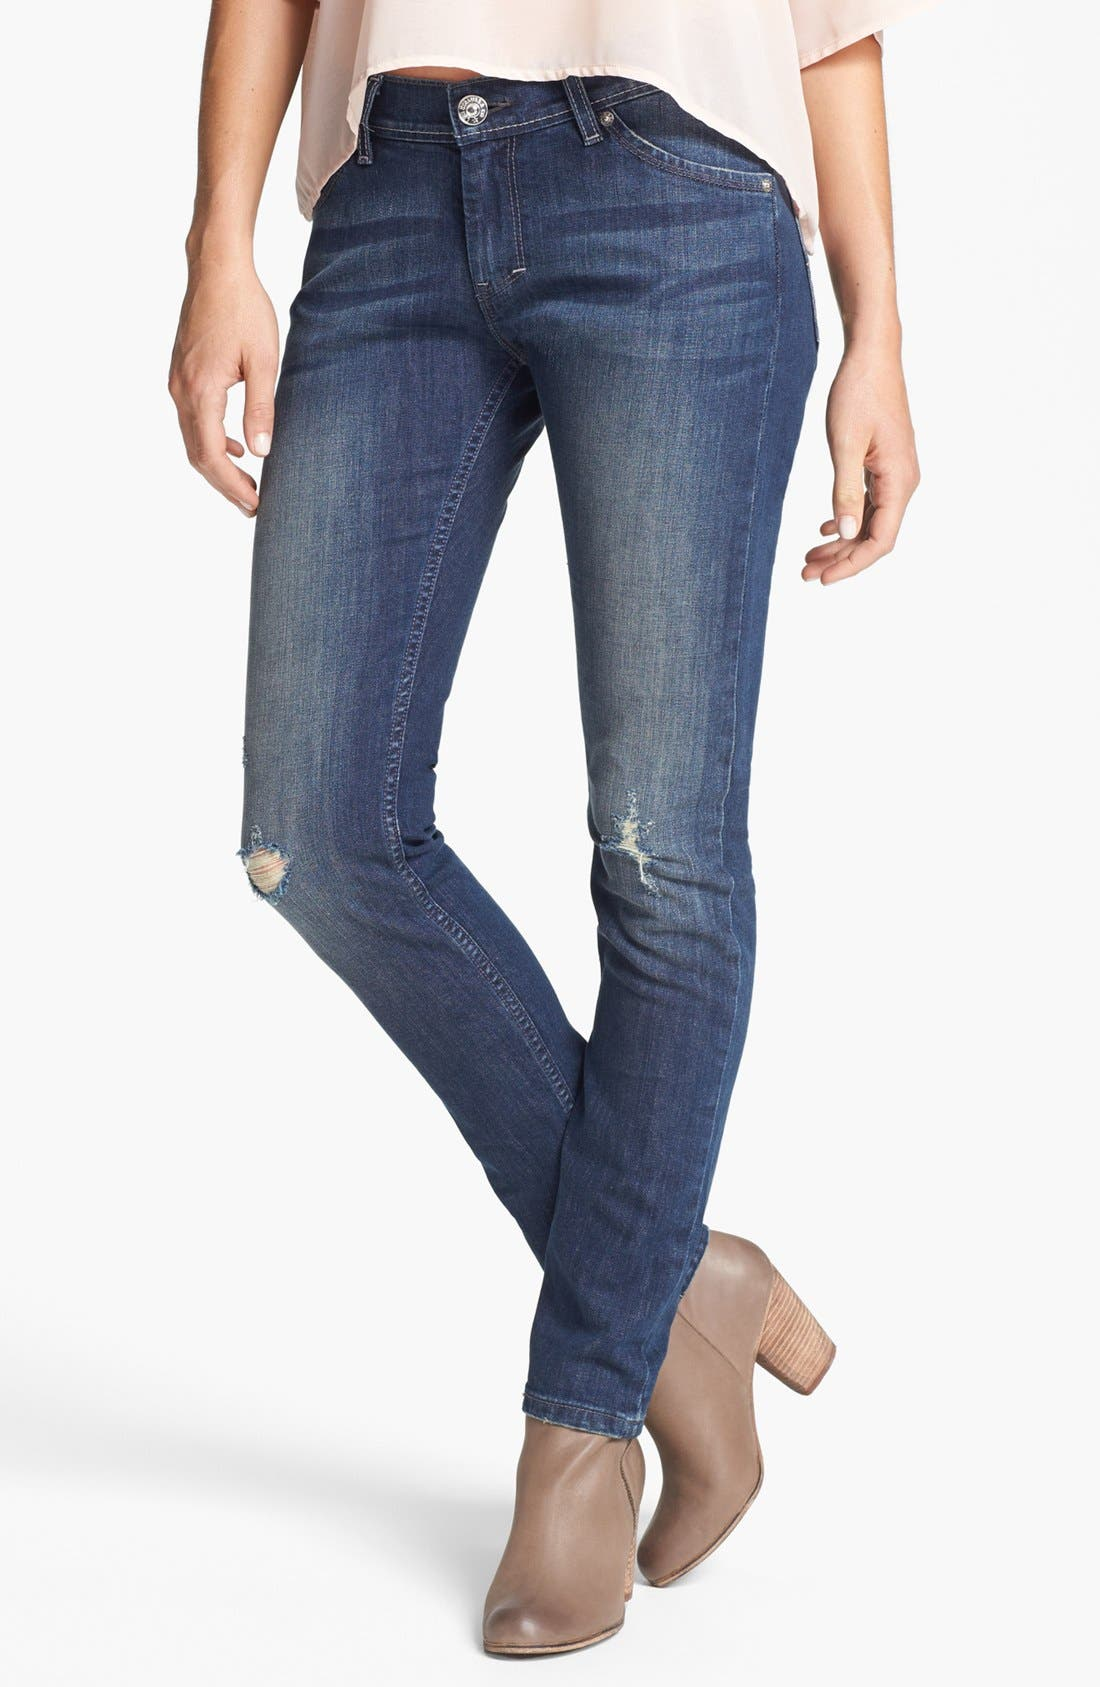 Alternate Image 1 Selected - Levi's® 'XP' Boyfriend Skinny Jeans (Miners Blue)